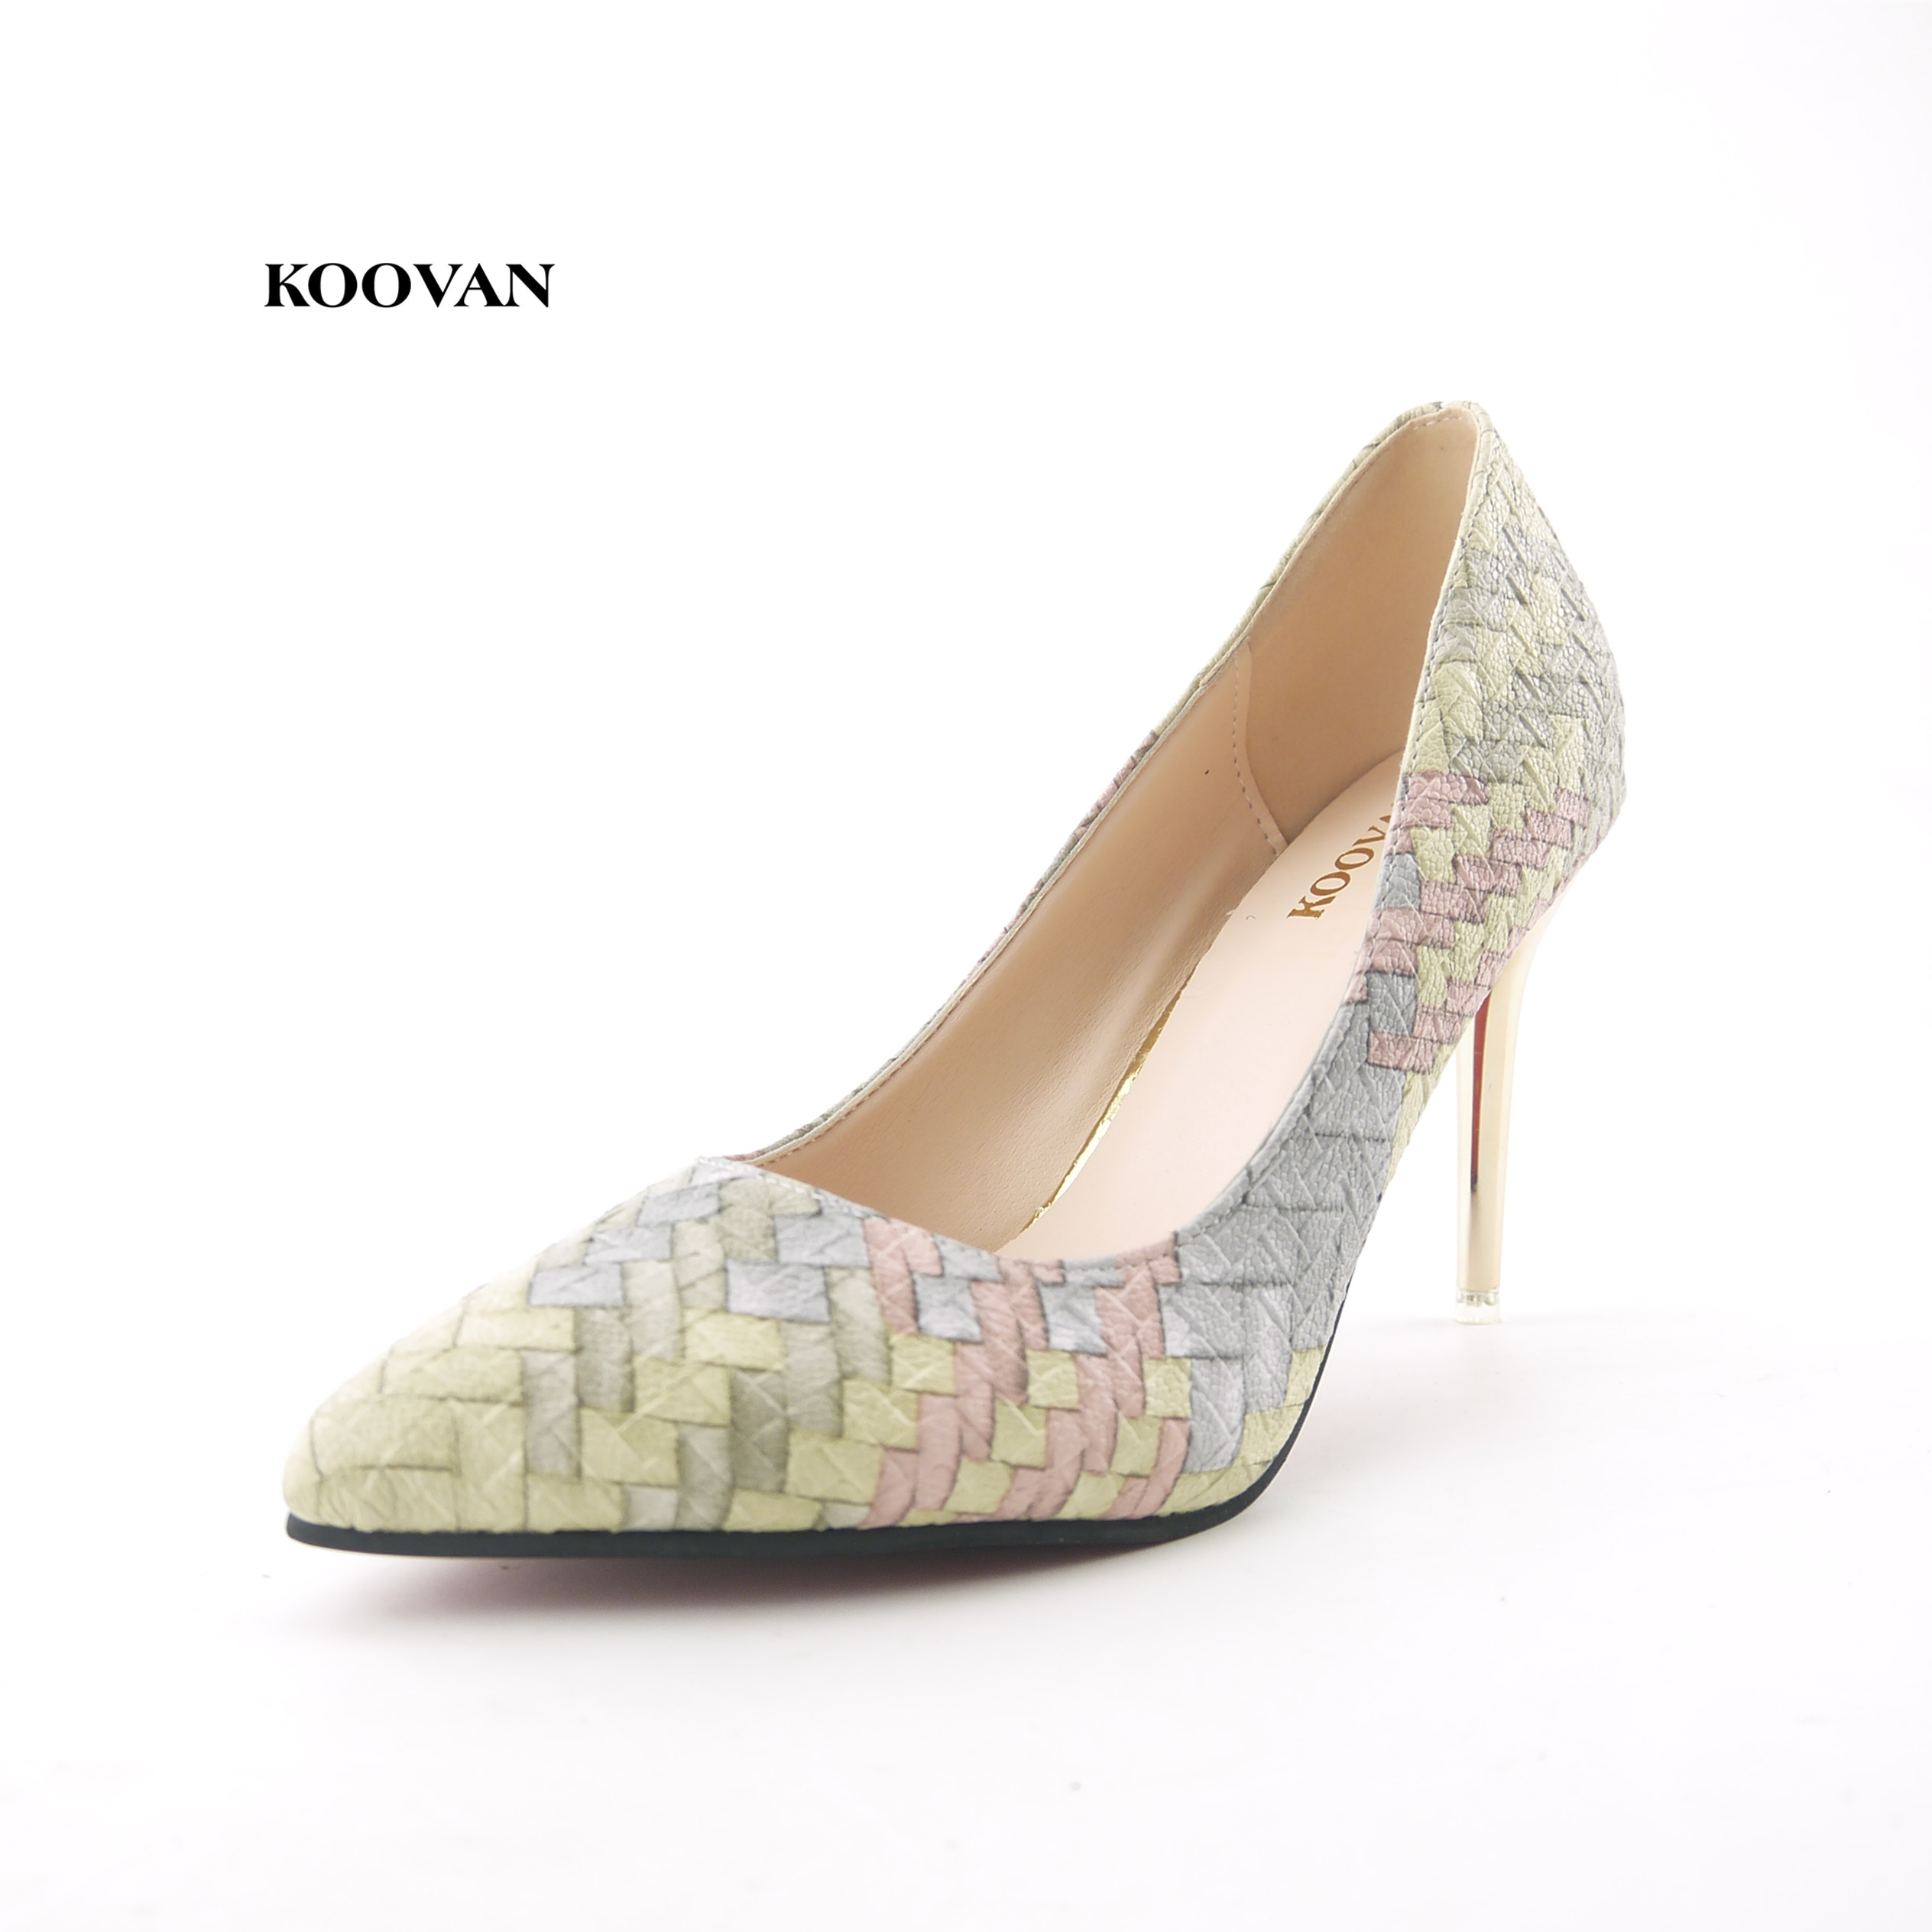 Koovan Women Pumps  2017 Spring Autumn New Fashion Straw Woven Women's Shoes  With High-heeled Nightclub Single Shoes 9cm 2016 spring new fashion women hot sale nightclub sexy fine with platform high heeled shoes ol shoes baok 8e36